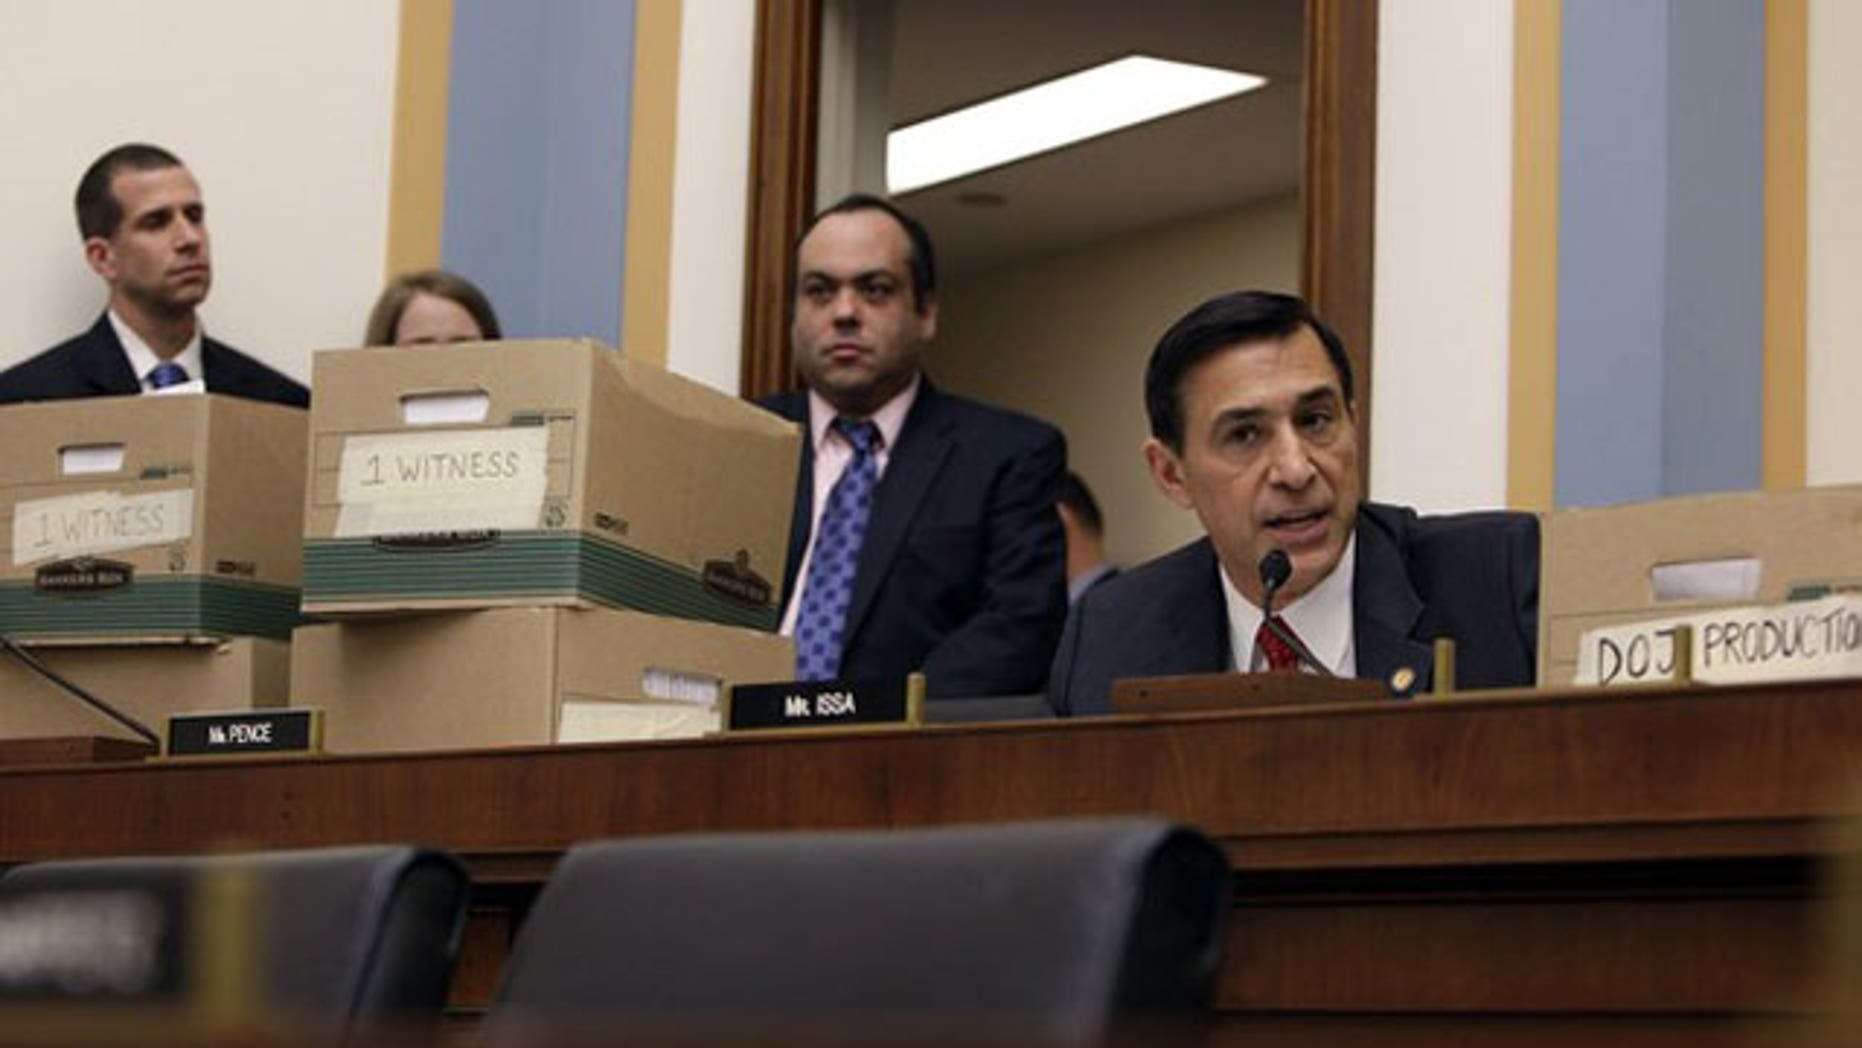 December 8, 2011: Rep. Darrell Issa (R-CA) asks a question to U.S. Attorney General Eric Holder during the House Judiciary Committee hearing on Capitol Hill in Washington.